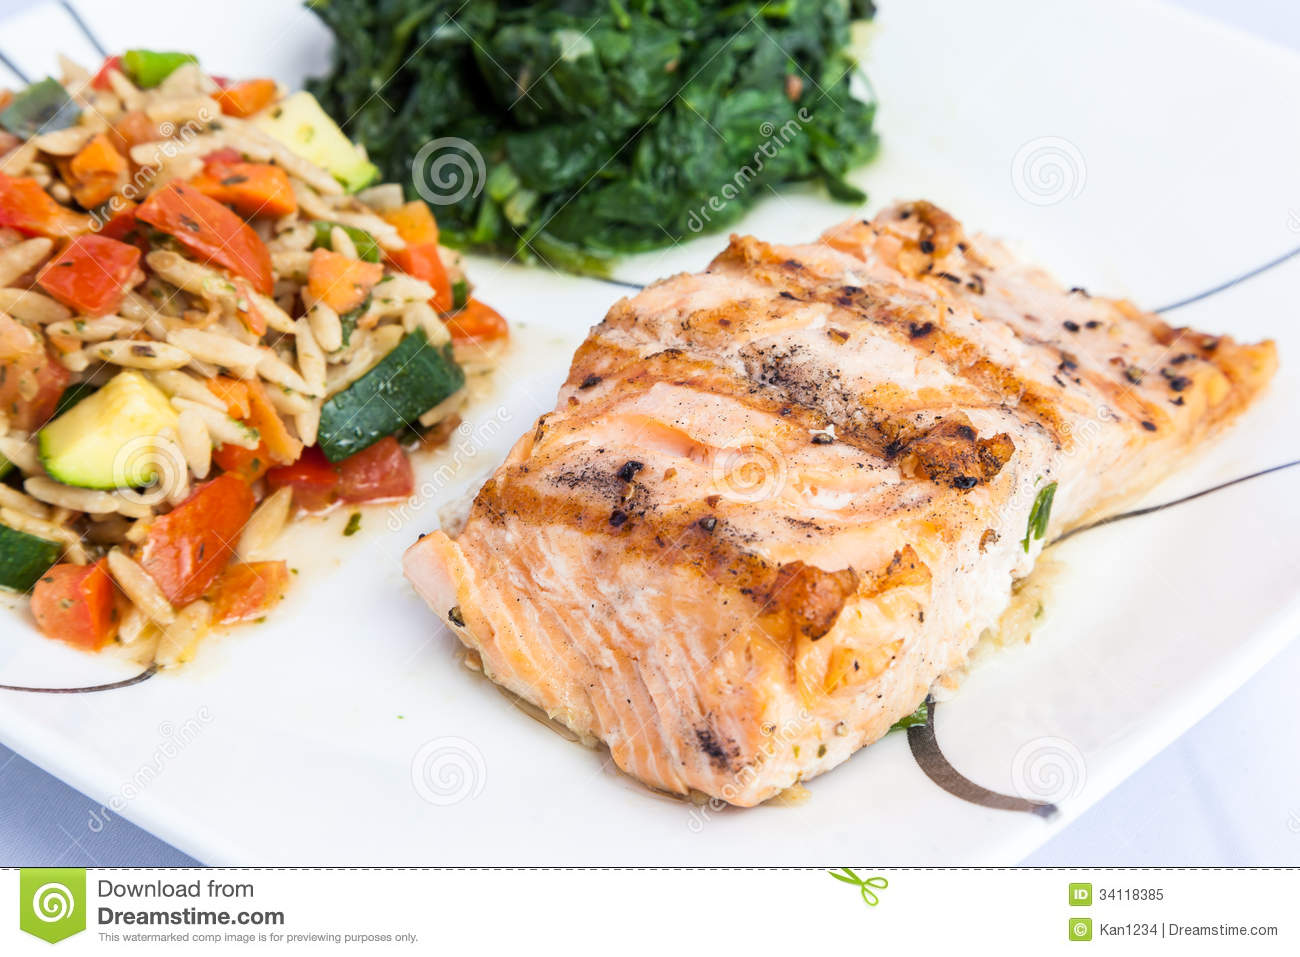 delicious grill salmon with side dishes royalty free stock photo image 34118385. Black Bedroom Furniture Sets. Home Design Ideas